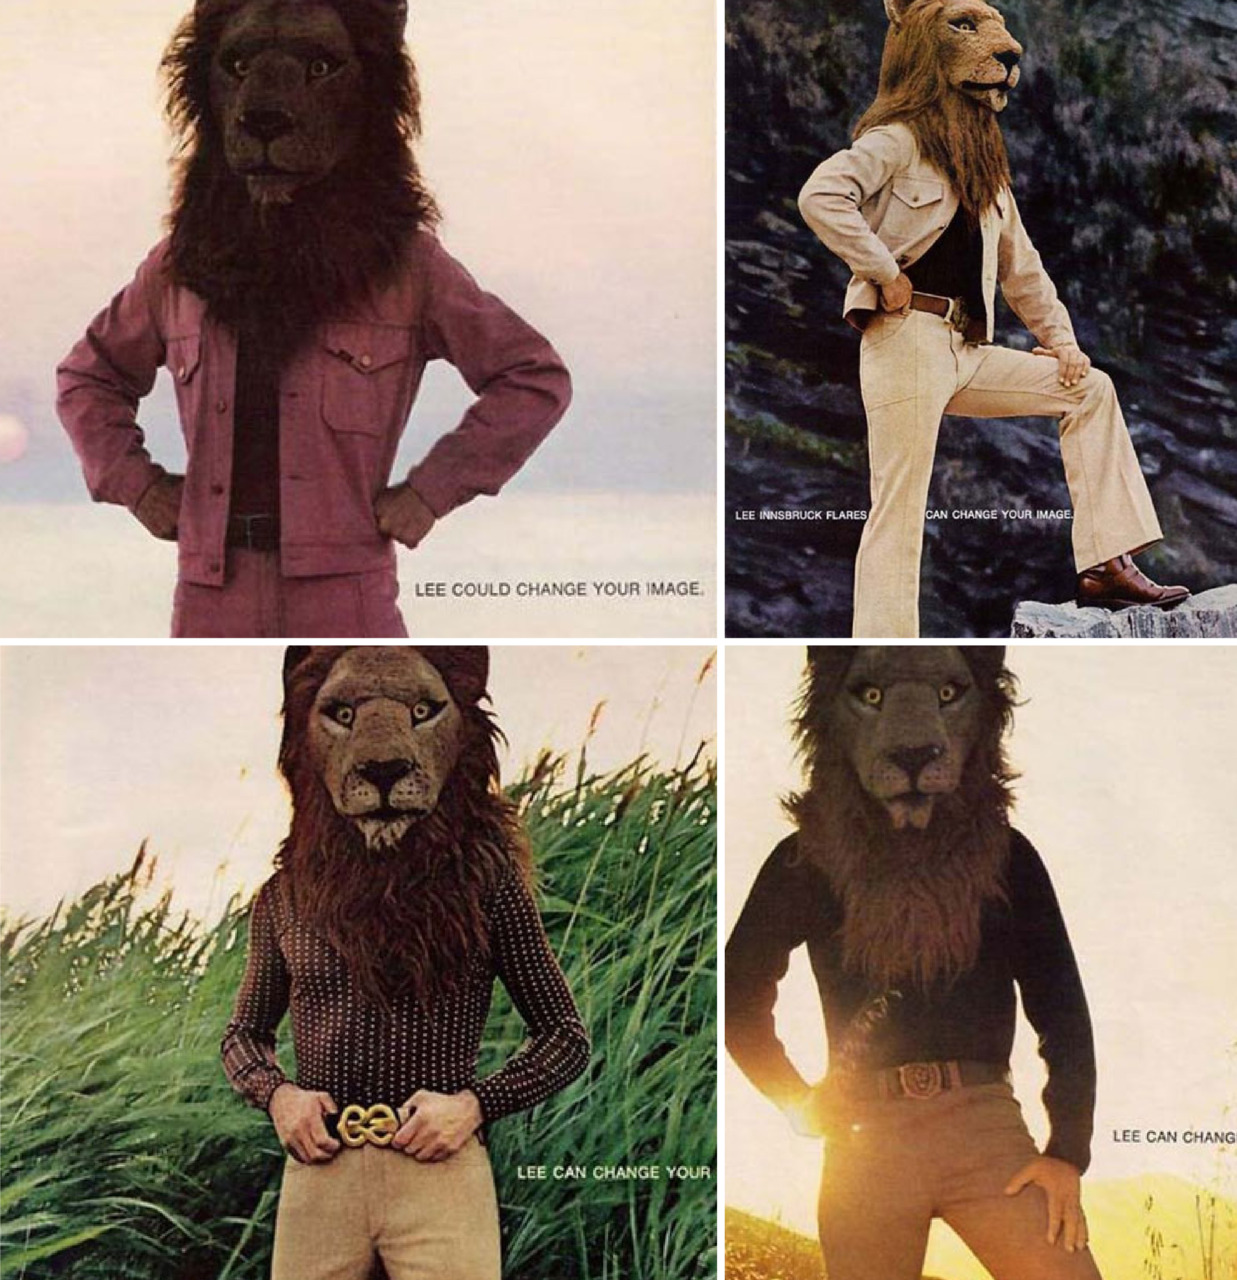 In 1971, Lee not only cut off your circulation with their tight pants, but made you look like a lion, too. Check out those slacks!